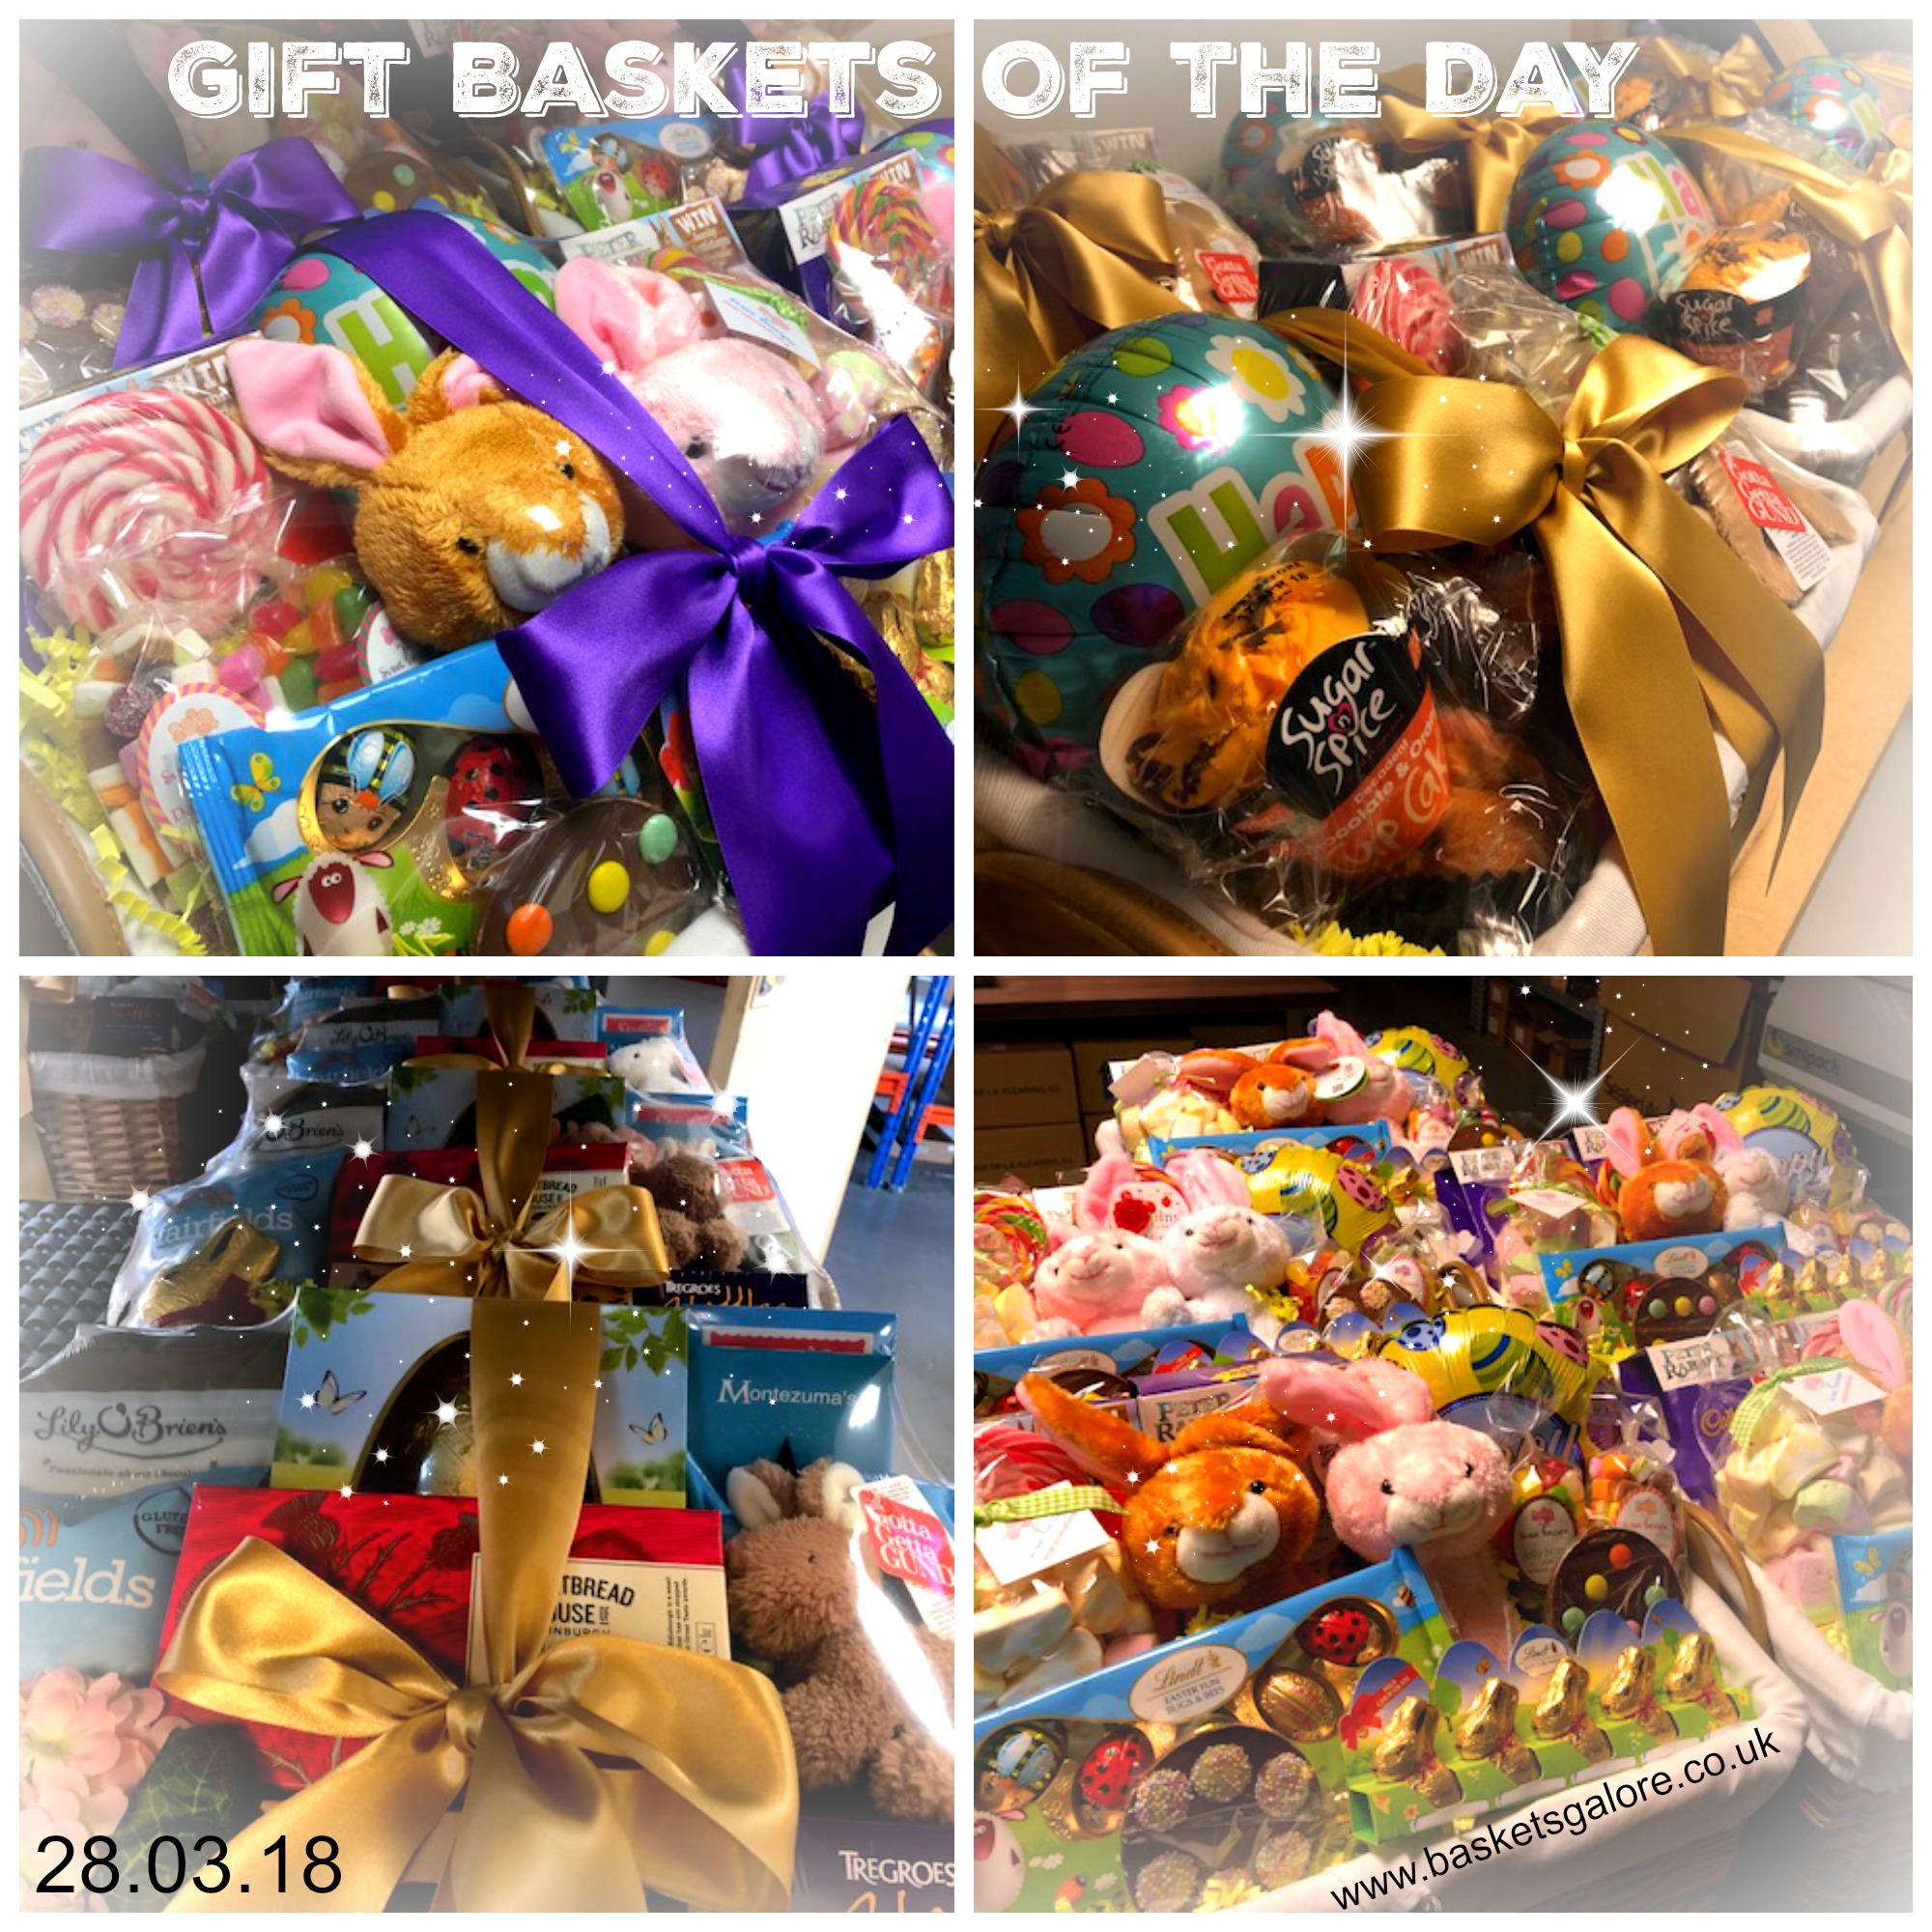 Baskets Galore's Customer Gifts – Gift Basket of the Day 28.03.18